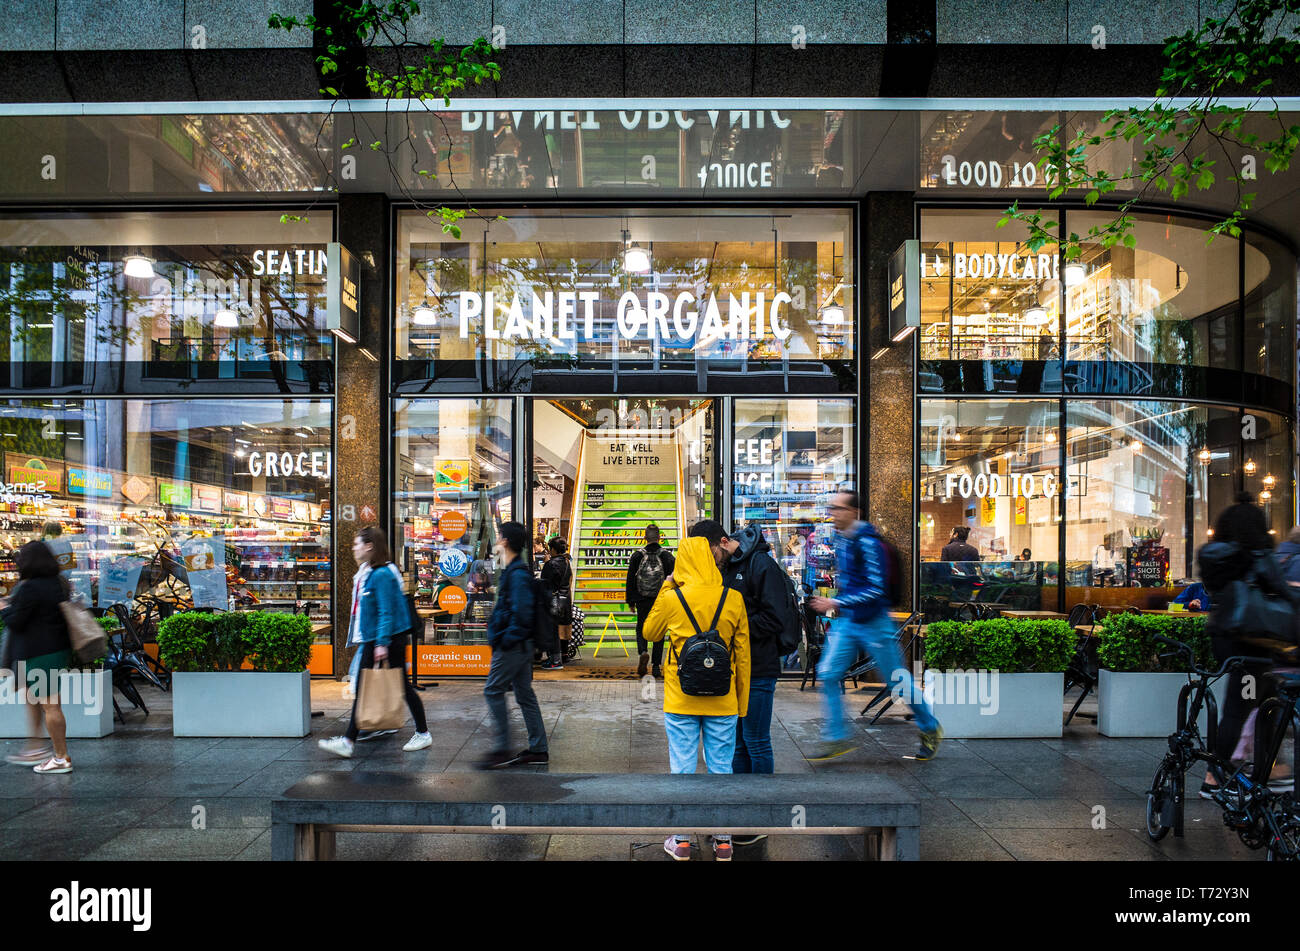 Planet Organic Store & Cafe London, the Planet Organic store in Tottenham Court Road in central London. The chain was founded in the UK in 1995 - Stock Image